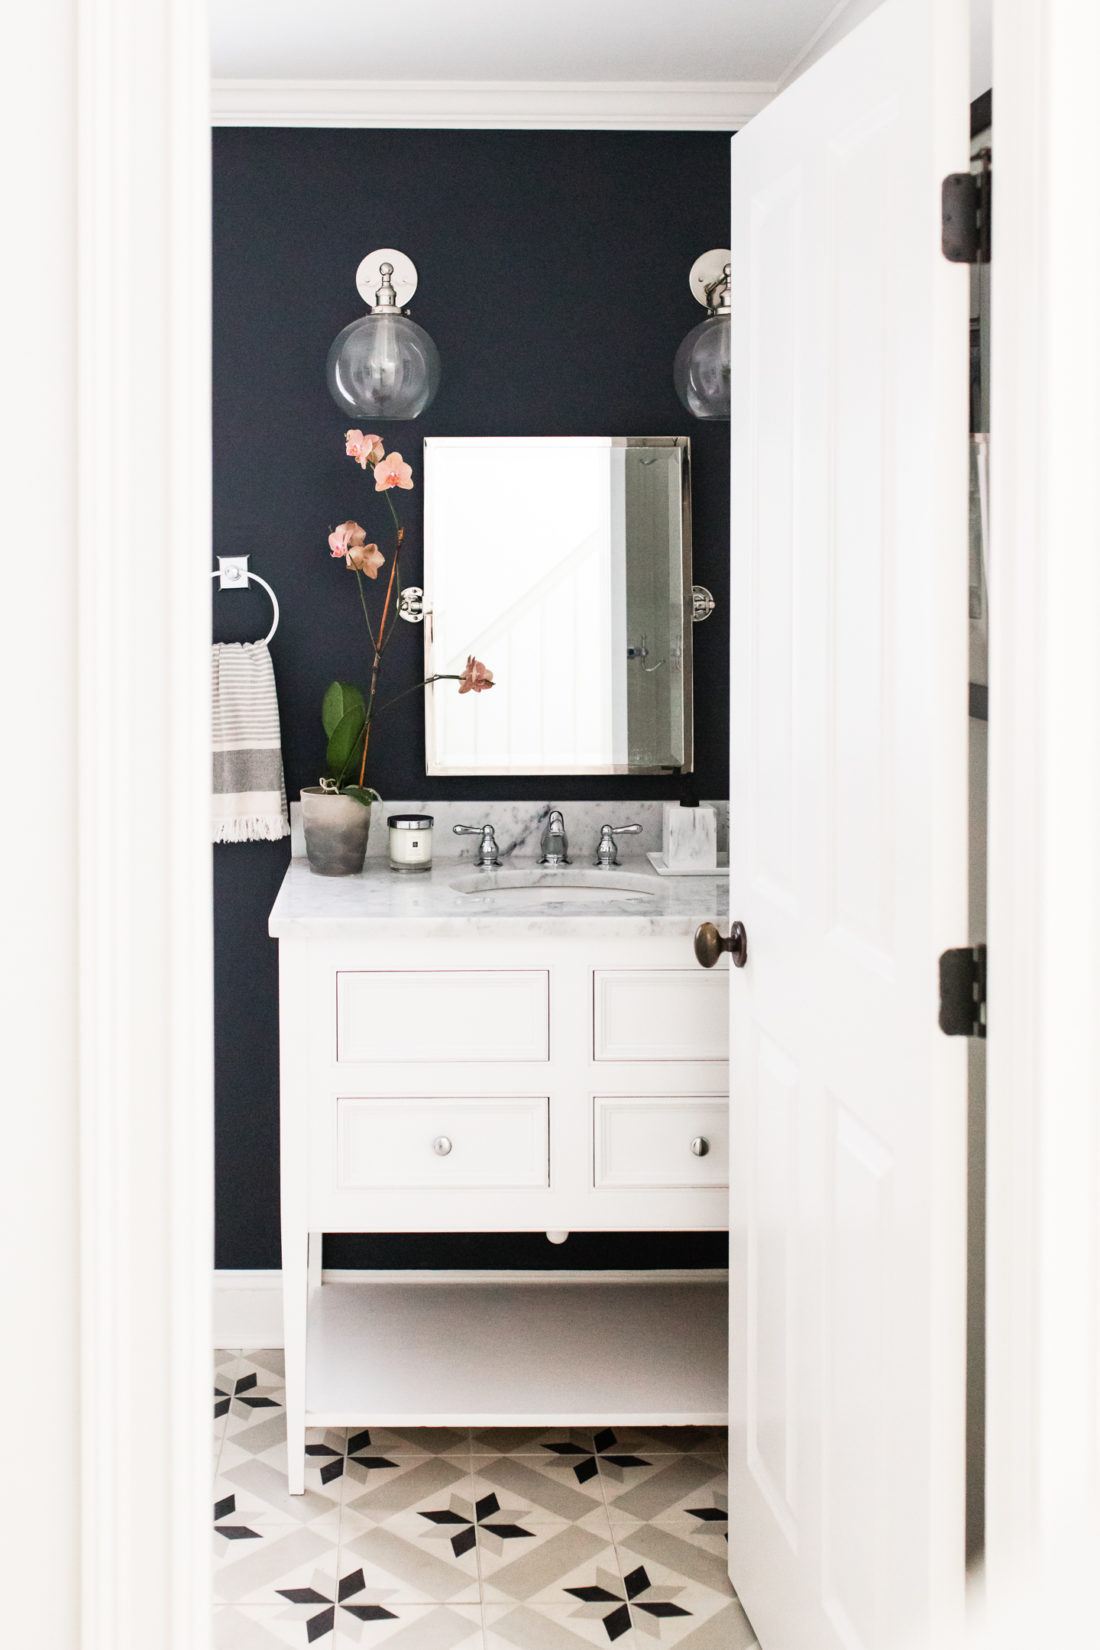 Eva Amurri Martino shares the black, white, and grey design of the powder room in her Connecticut home